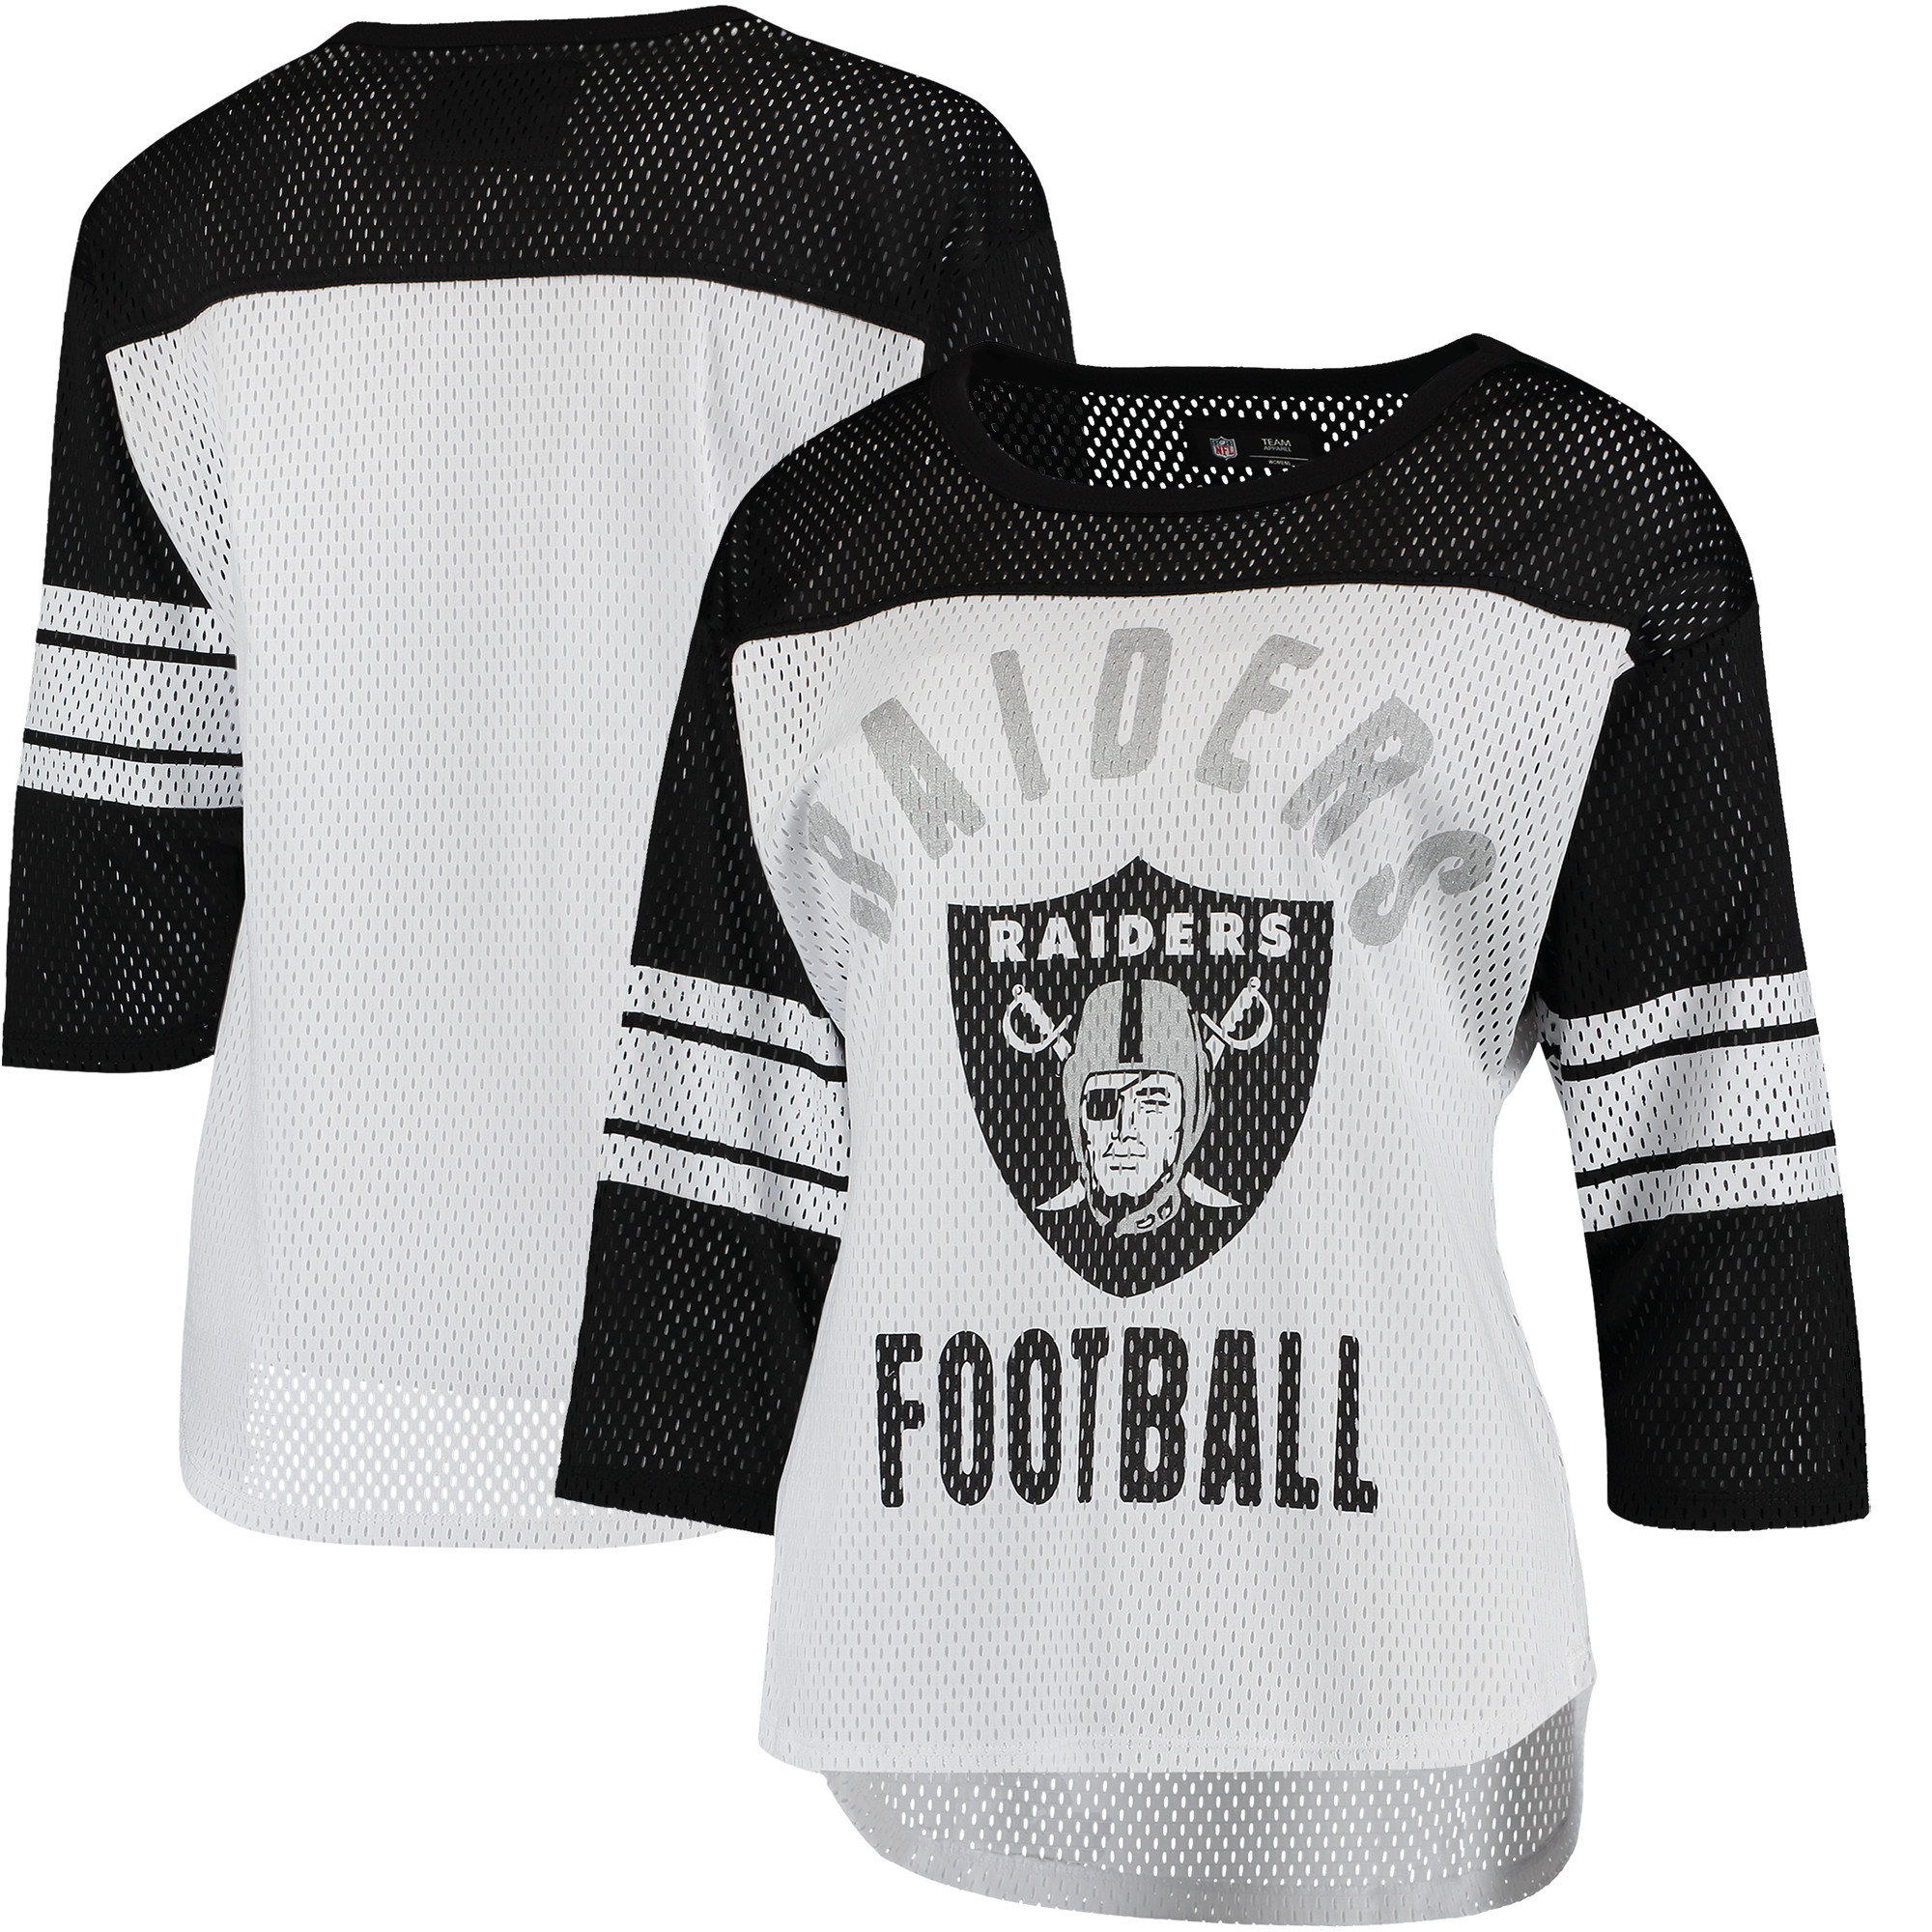 Oakland Raiders G-III 4Her by Carl Banks Women's First Team Three-Quarter Sleeve Mesh T-Shirt - White/Black